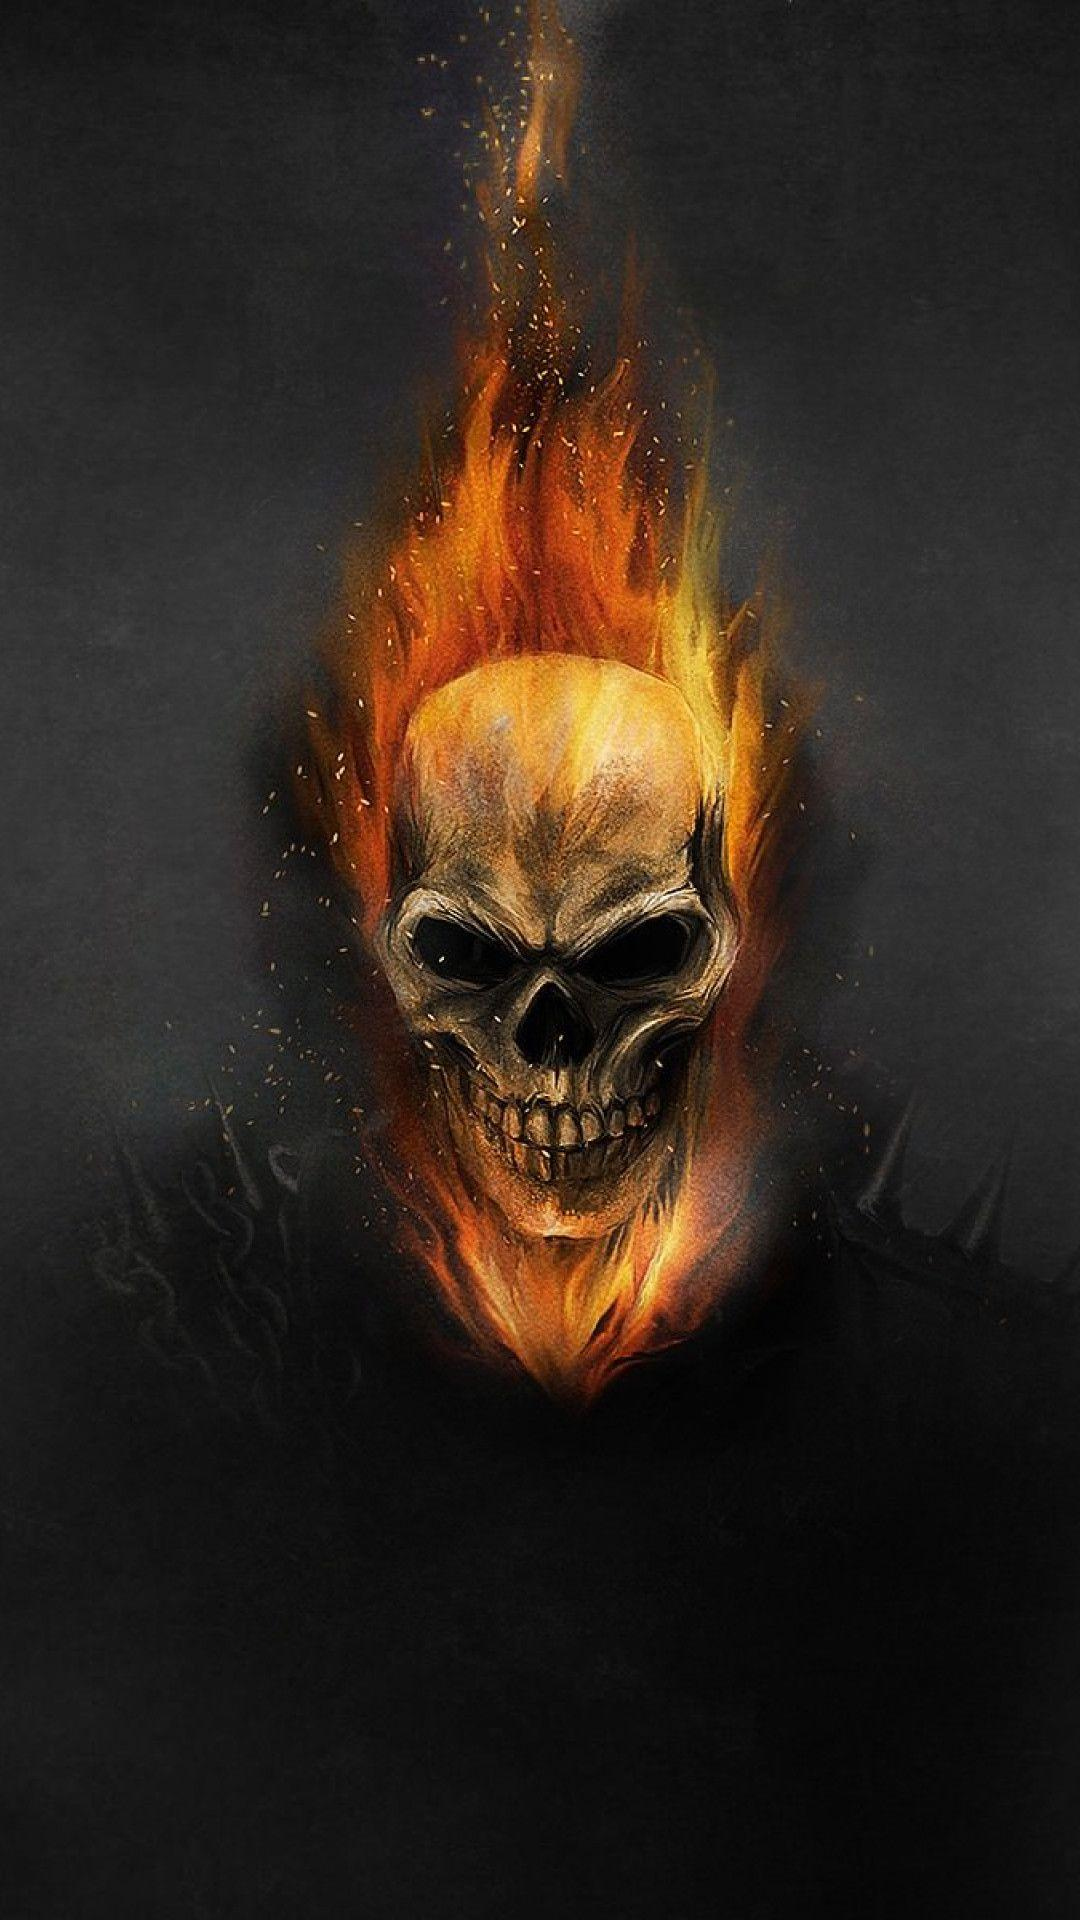 Ghost Rider, Skeleton Wallpapers iPhone 6 Plus Resolution